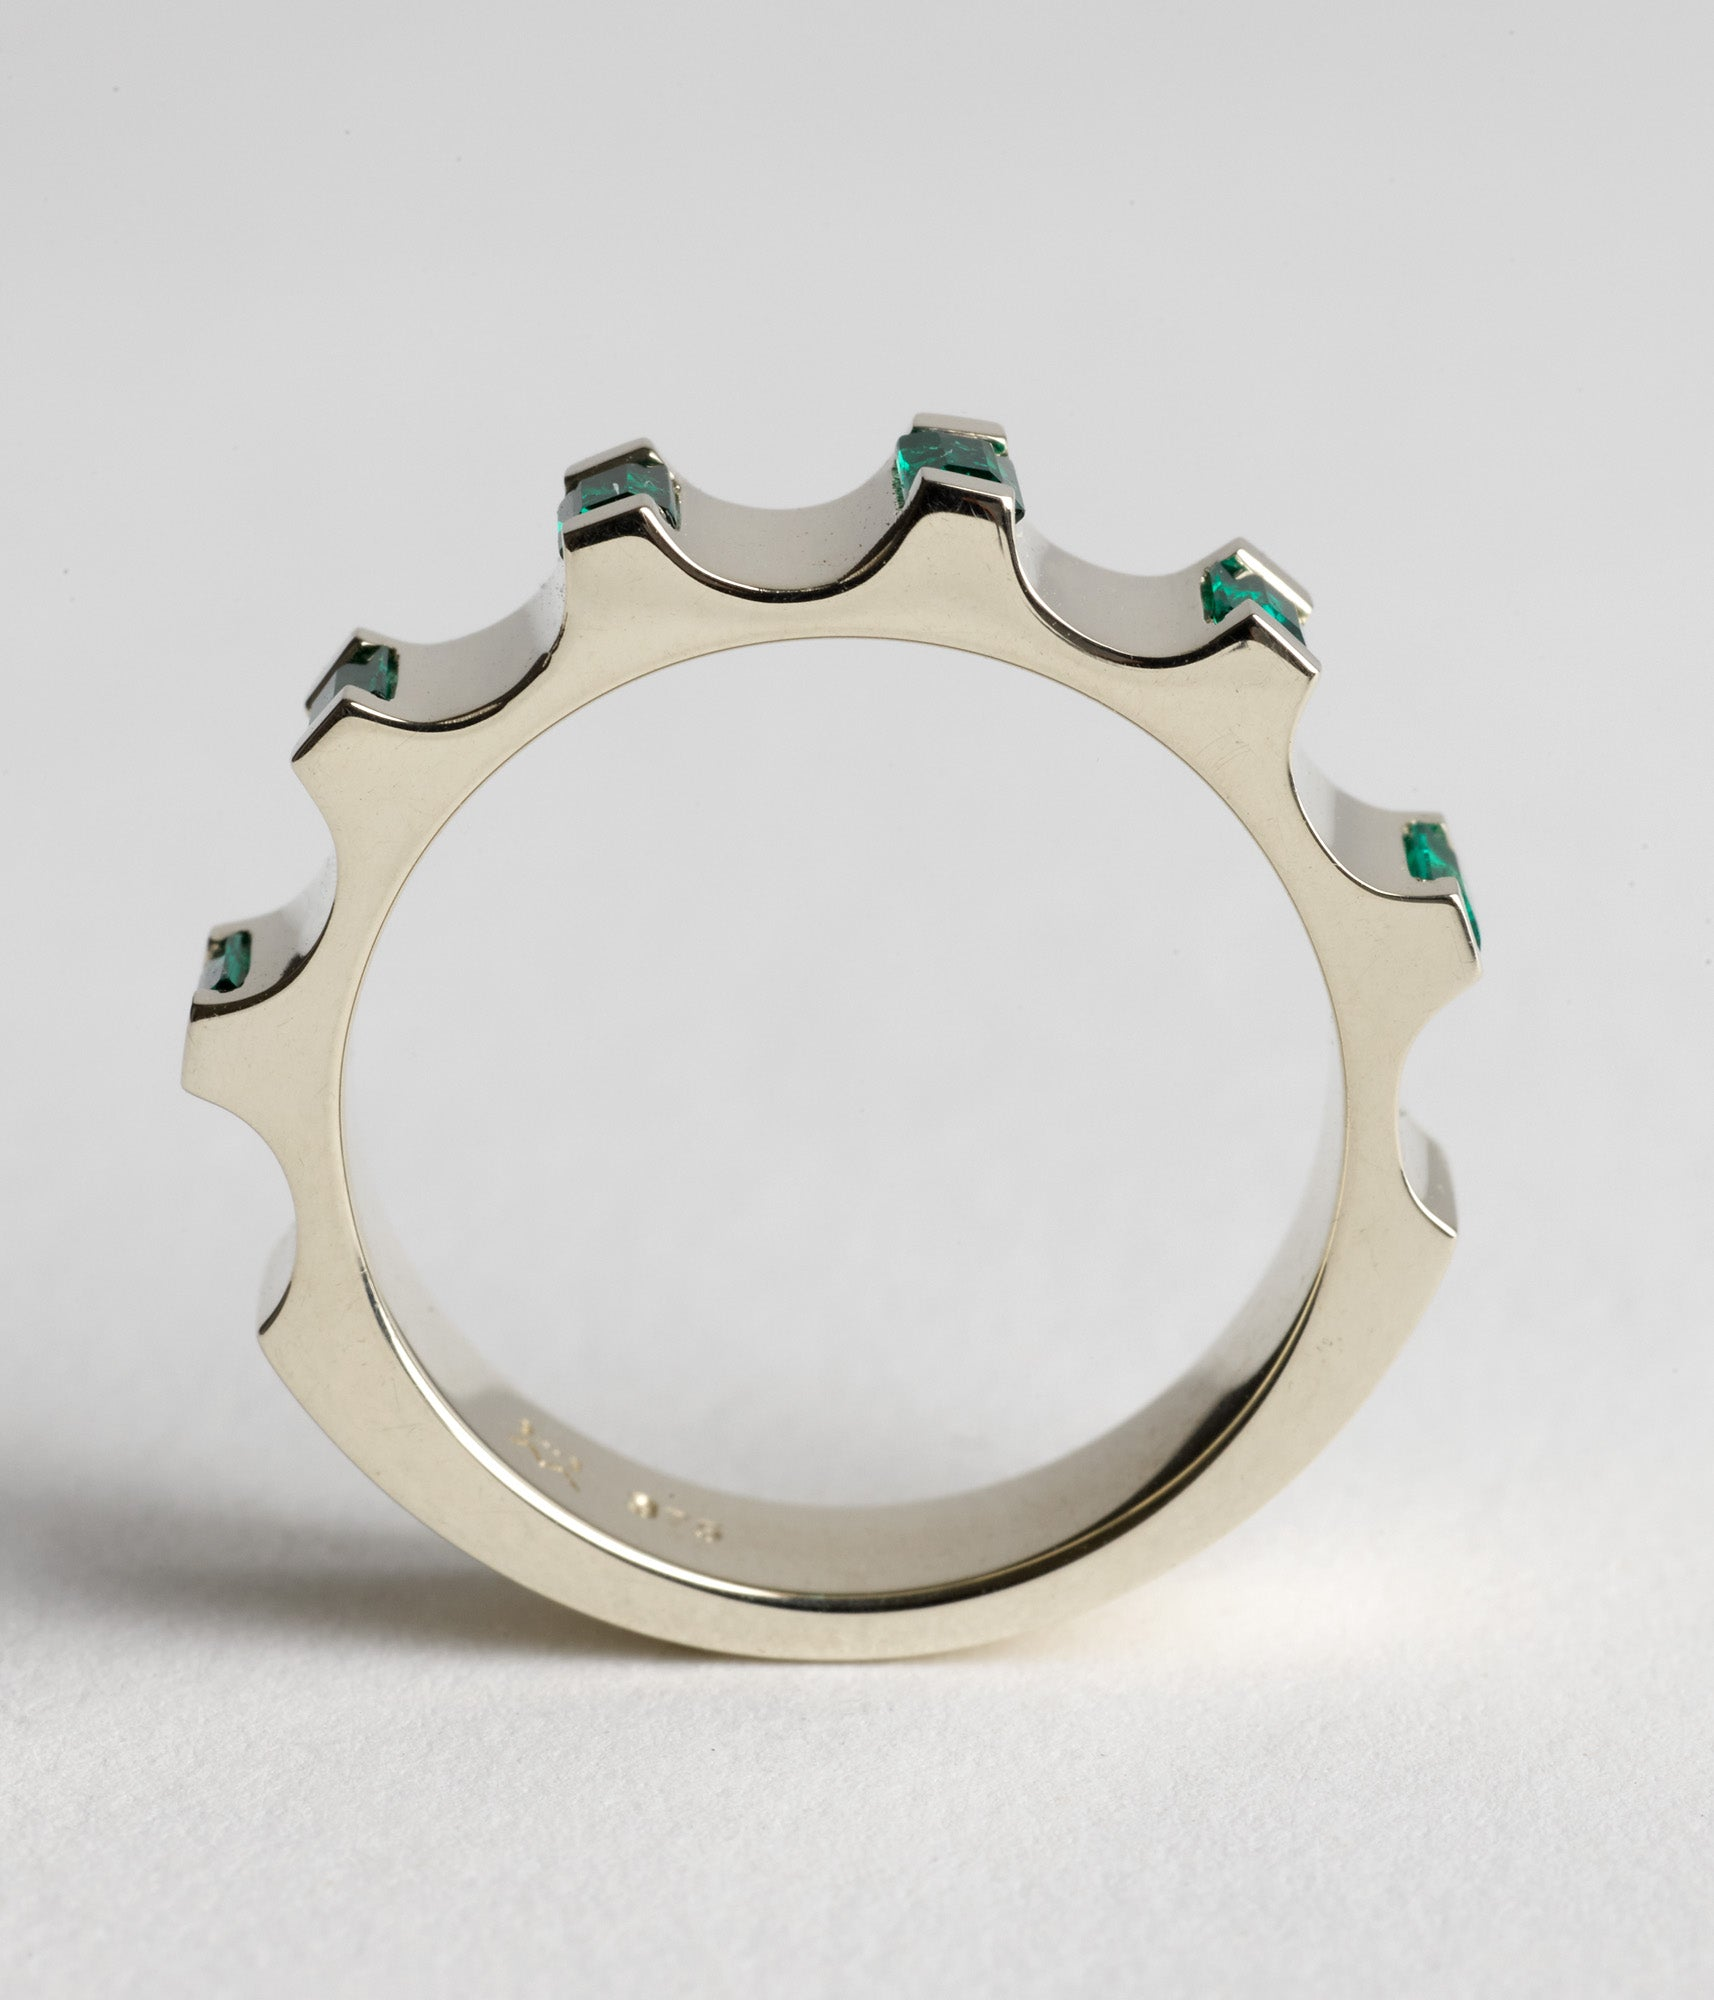 Parmentier ring - Emeralds & 9ct white gold